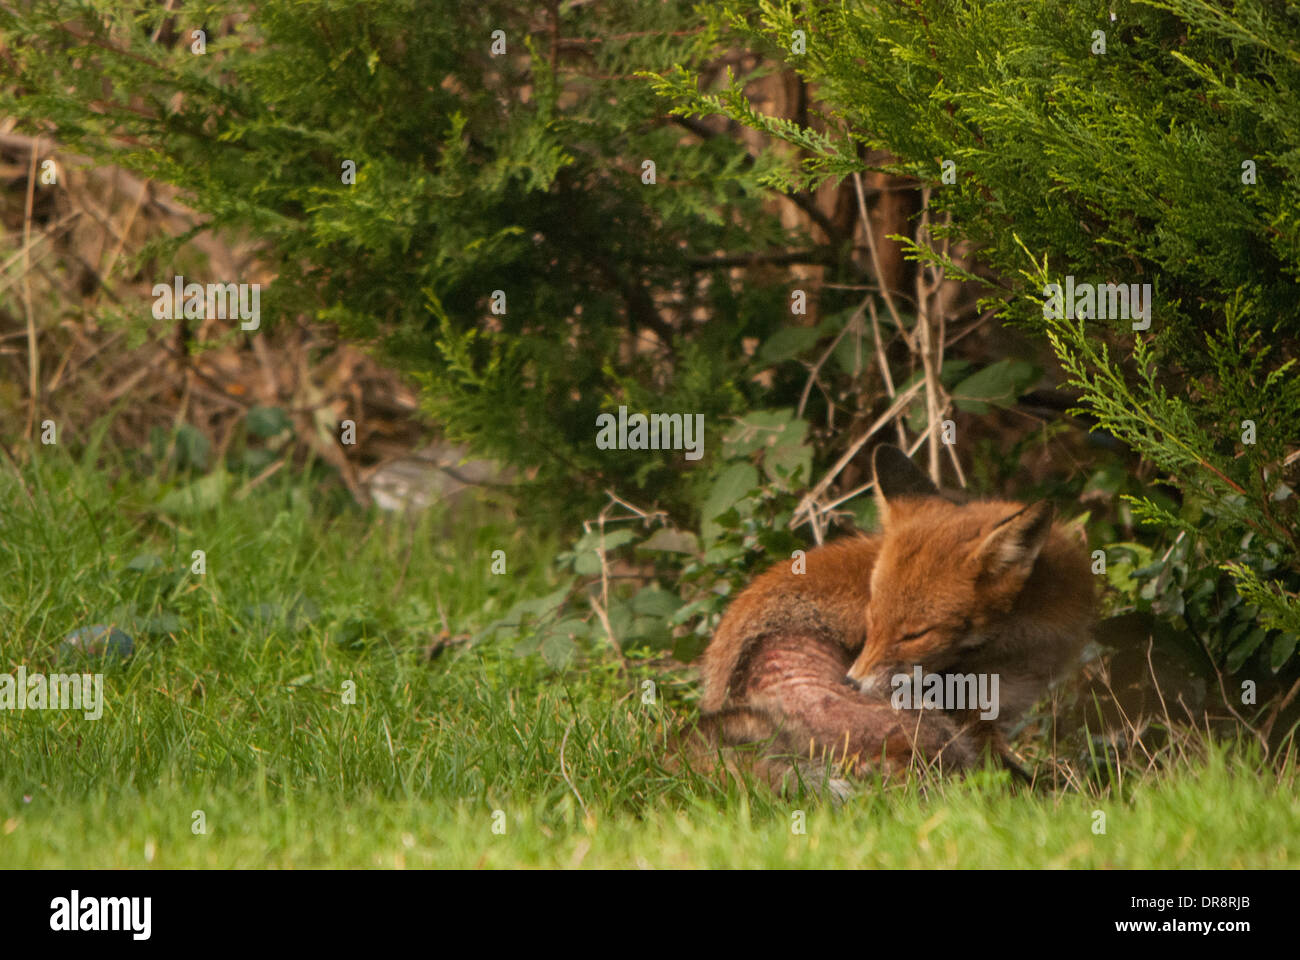 Fox (Vulpes vulpes) with skin affliction in a back garden. - Stock Image